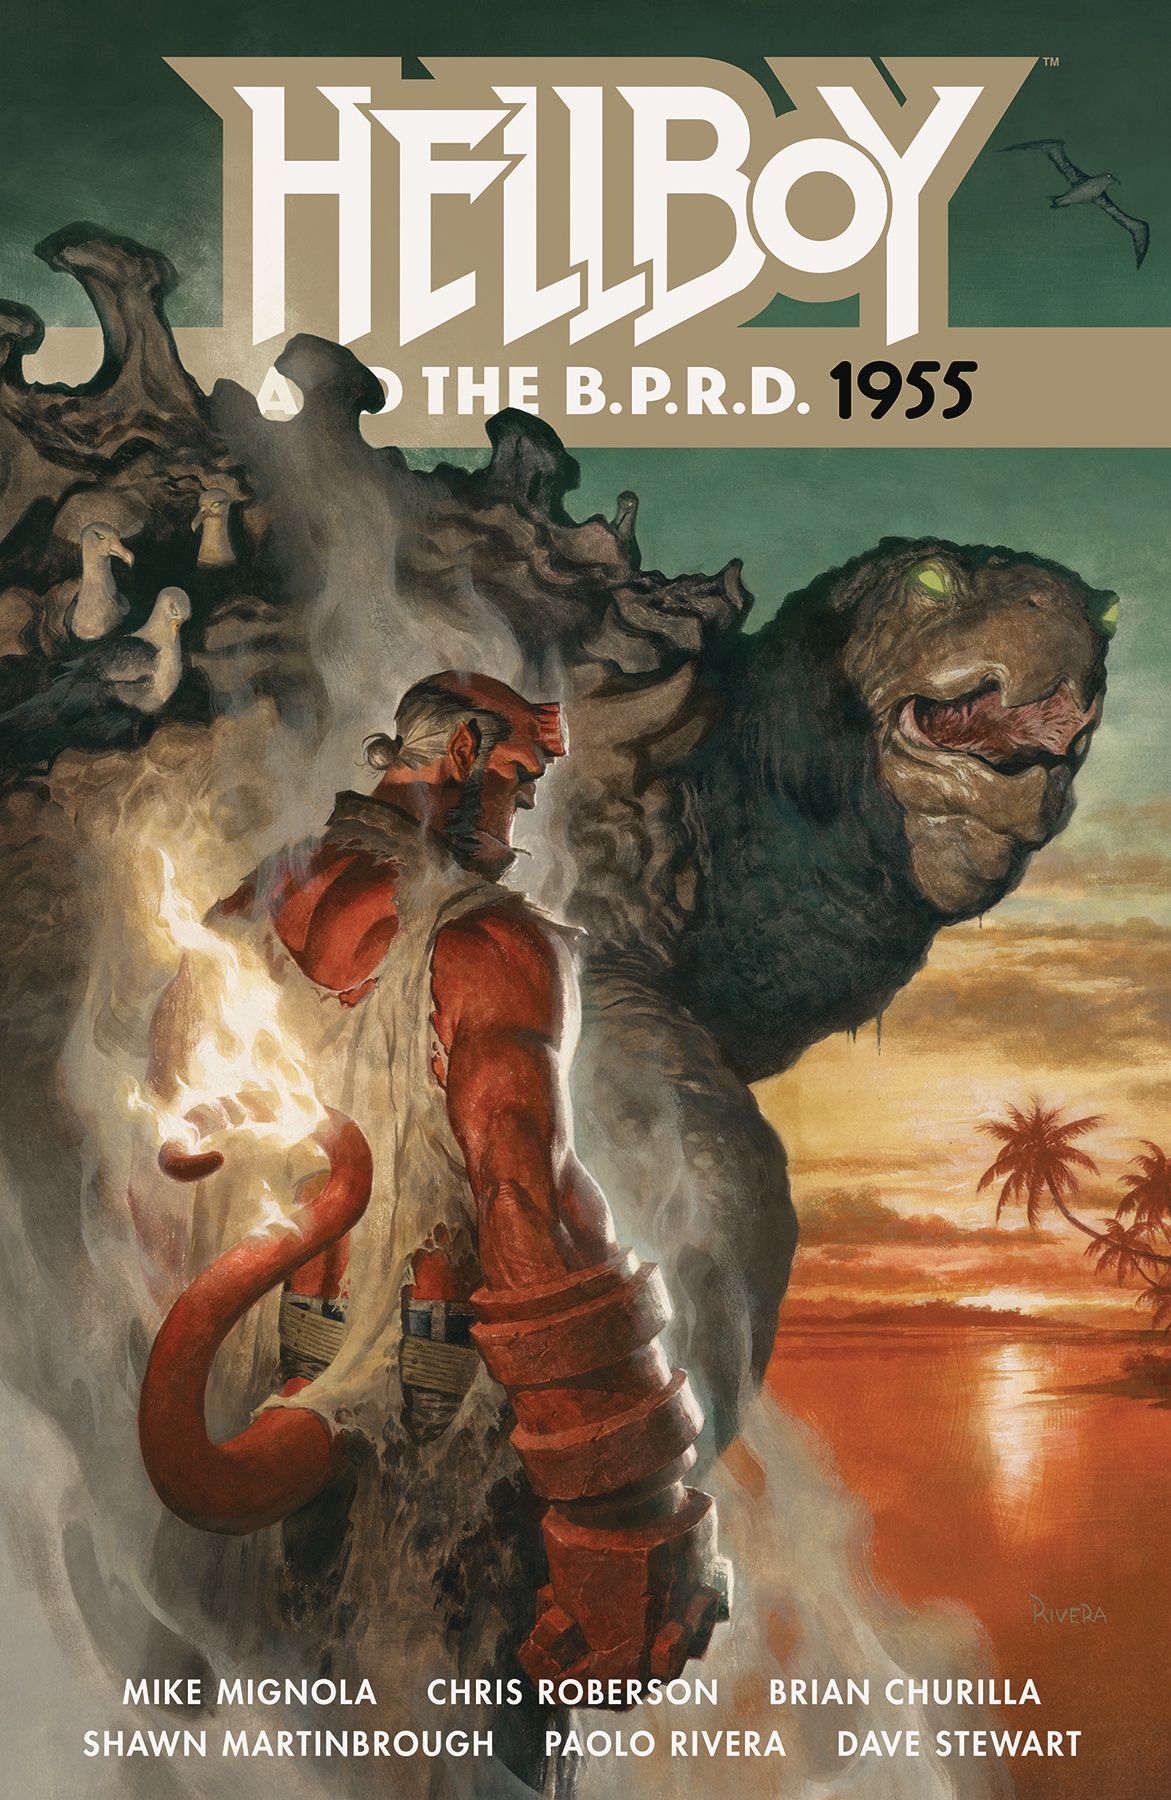 HELLBOY AND THE BPRD 1955 TP